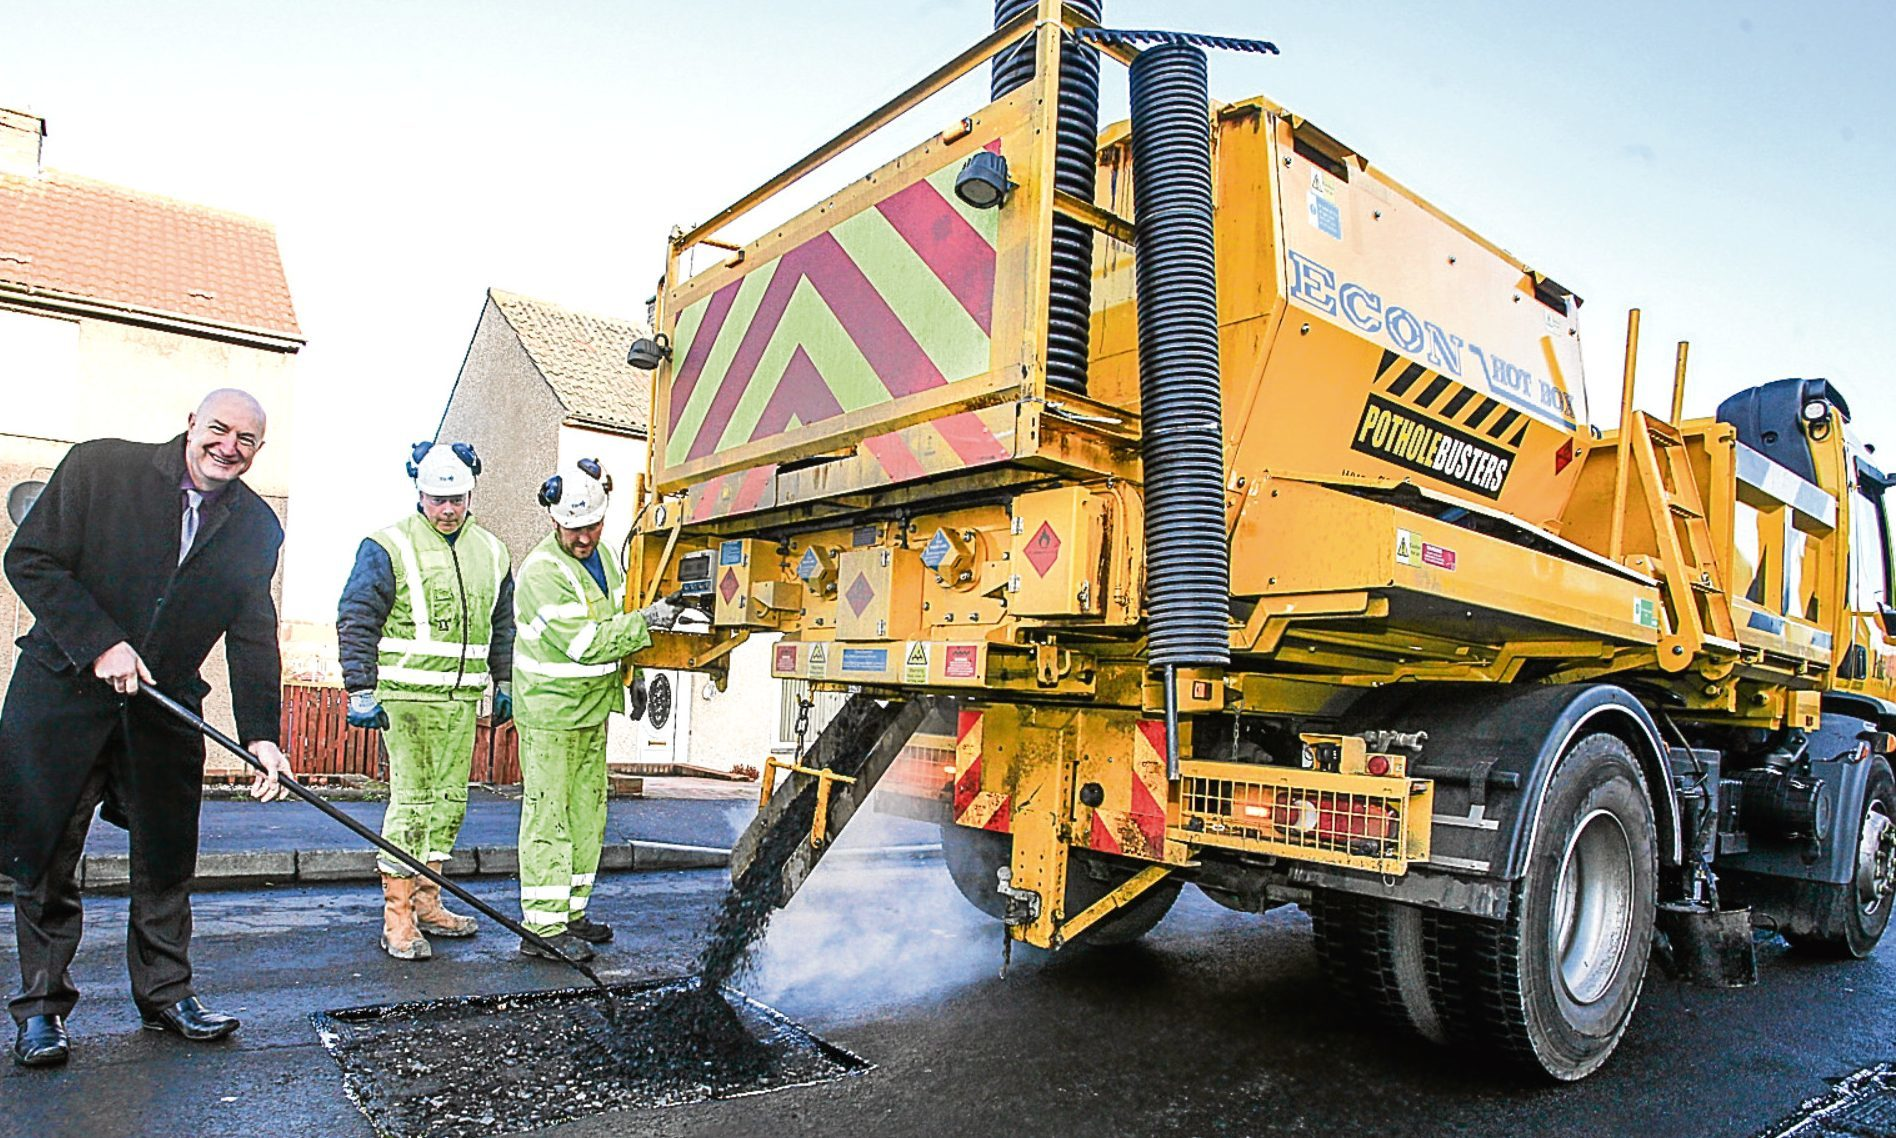 Cllr Neil Crooks is pictured in St Kilda Crescent, Kirkcaldy with the pothole buster team